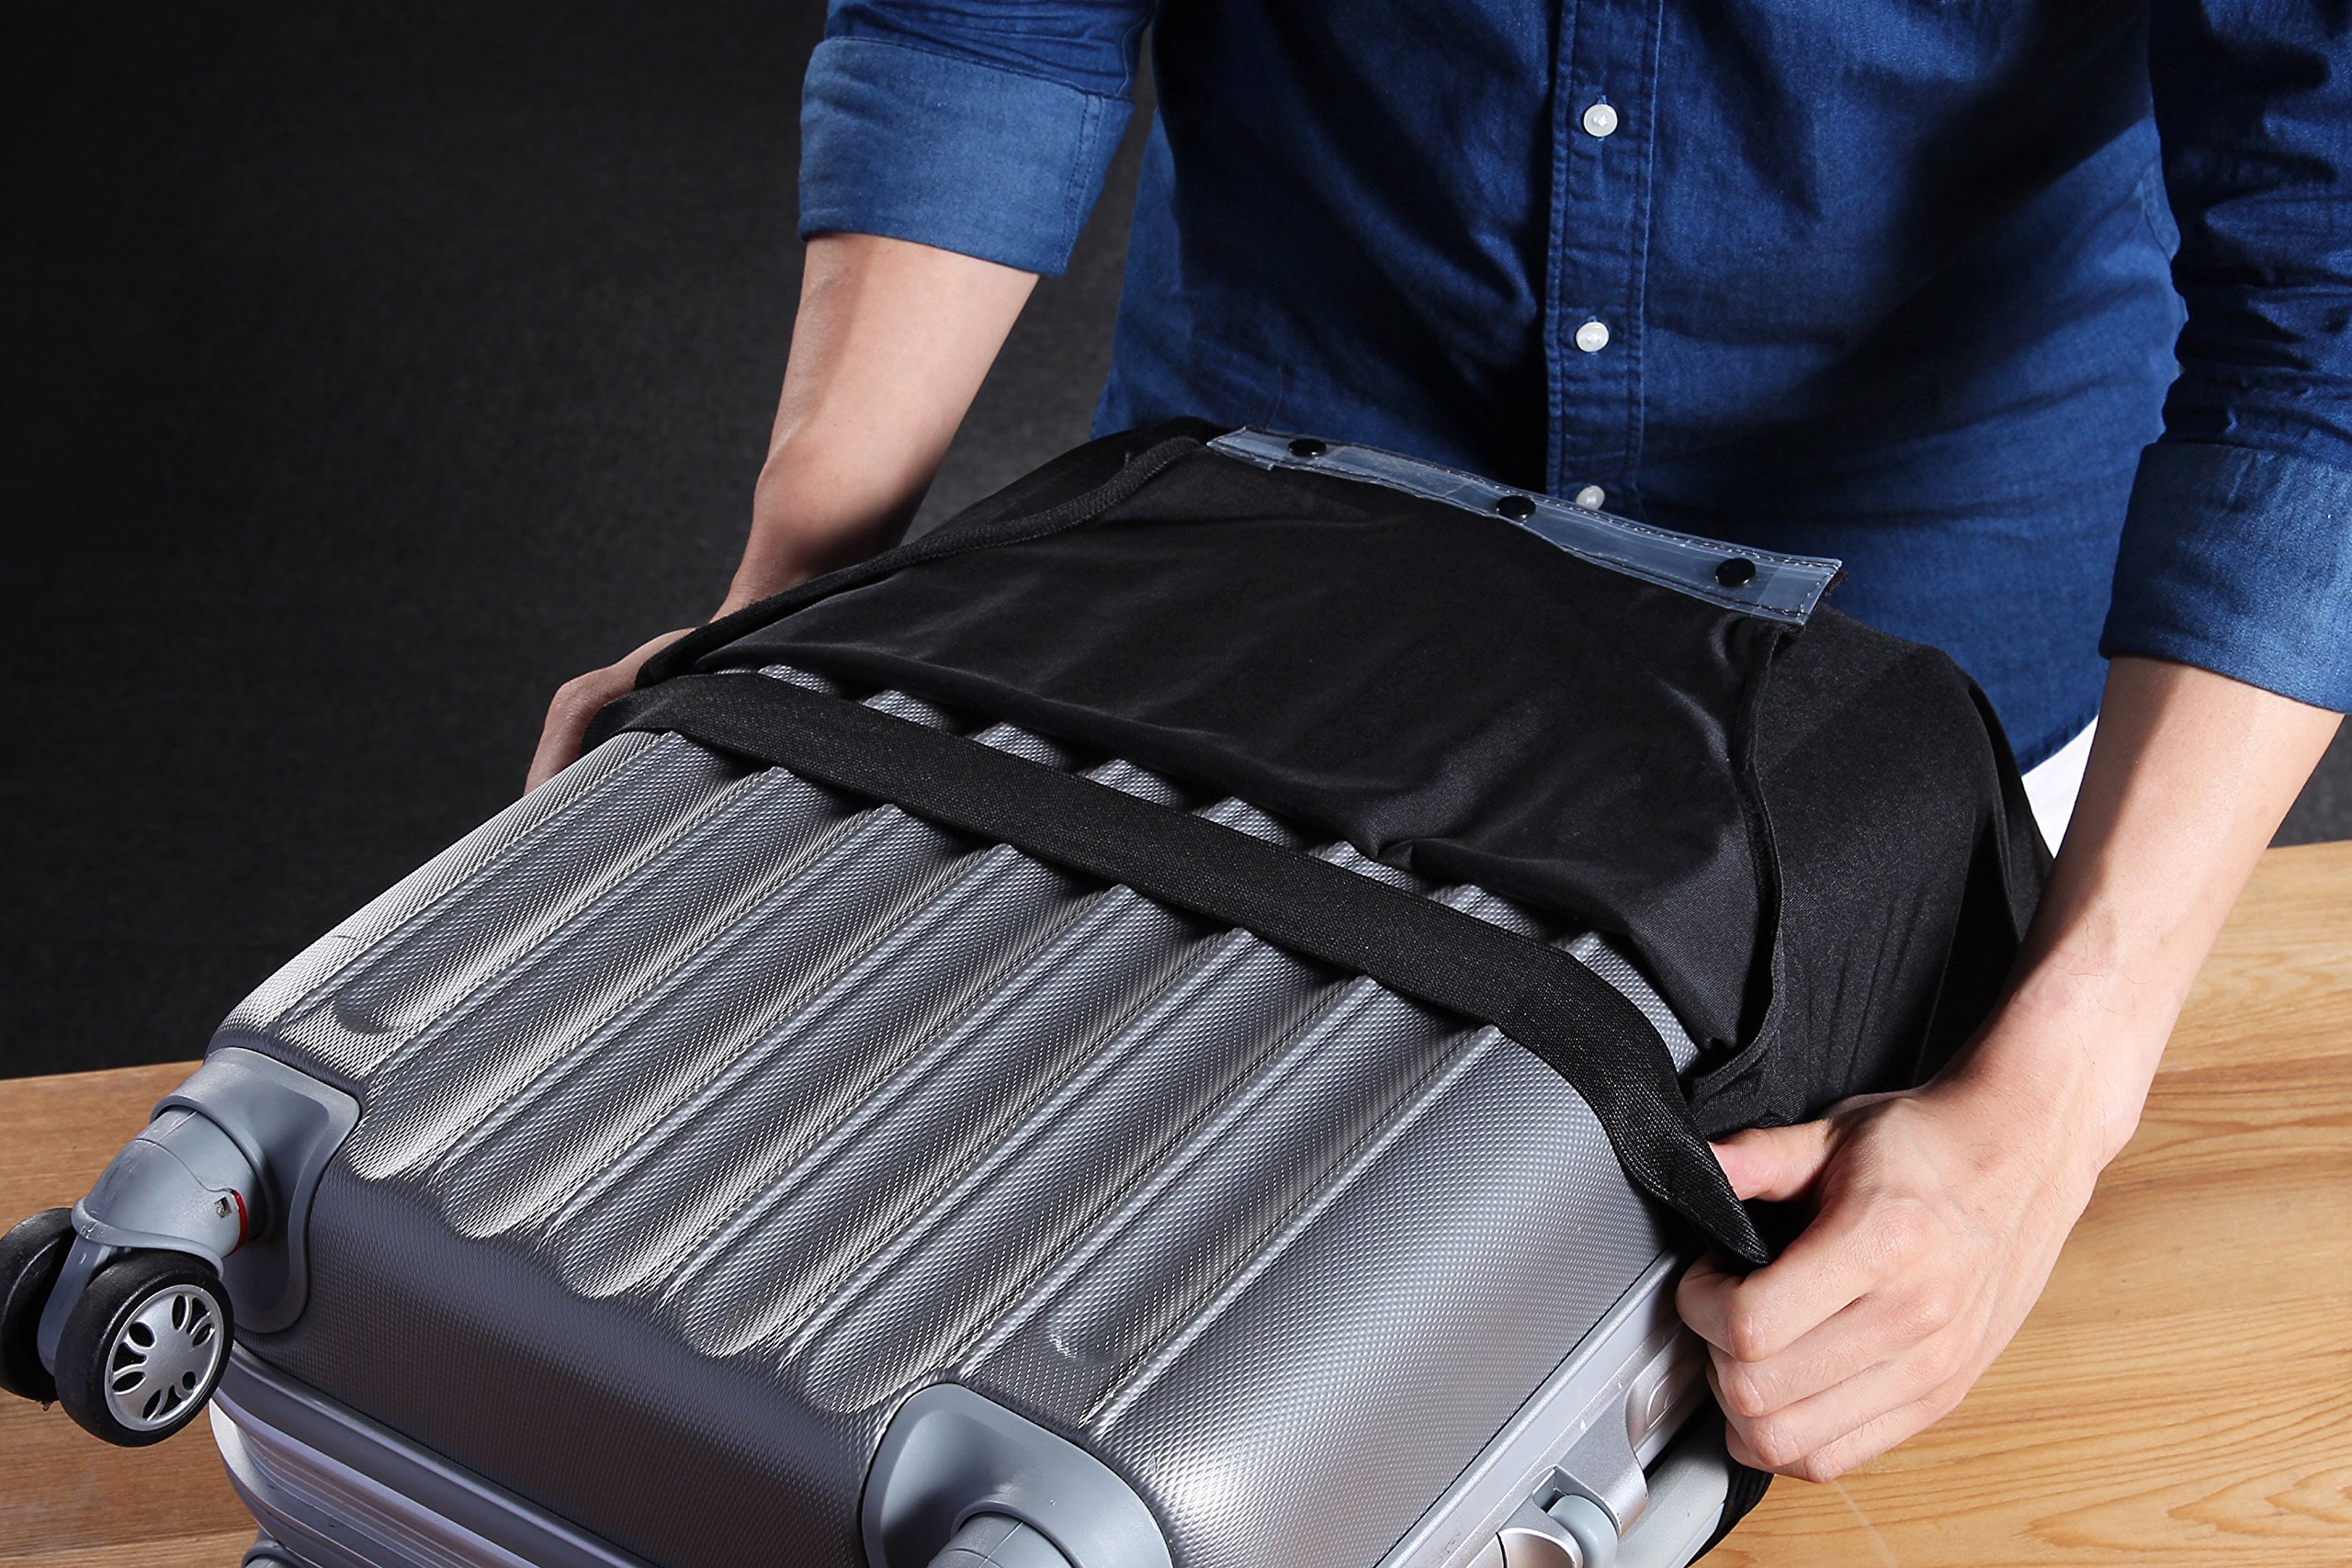 Travel Luggage Protective Cover - Stretchable Suitcase Protector Case, Black, 26 Inches by Juvale (Image #3)